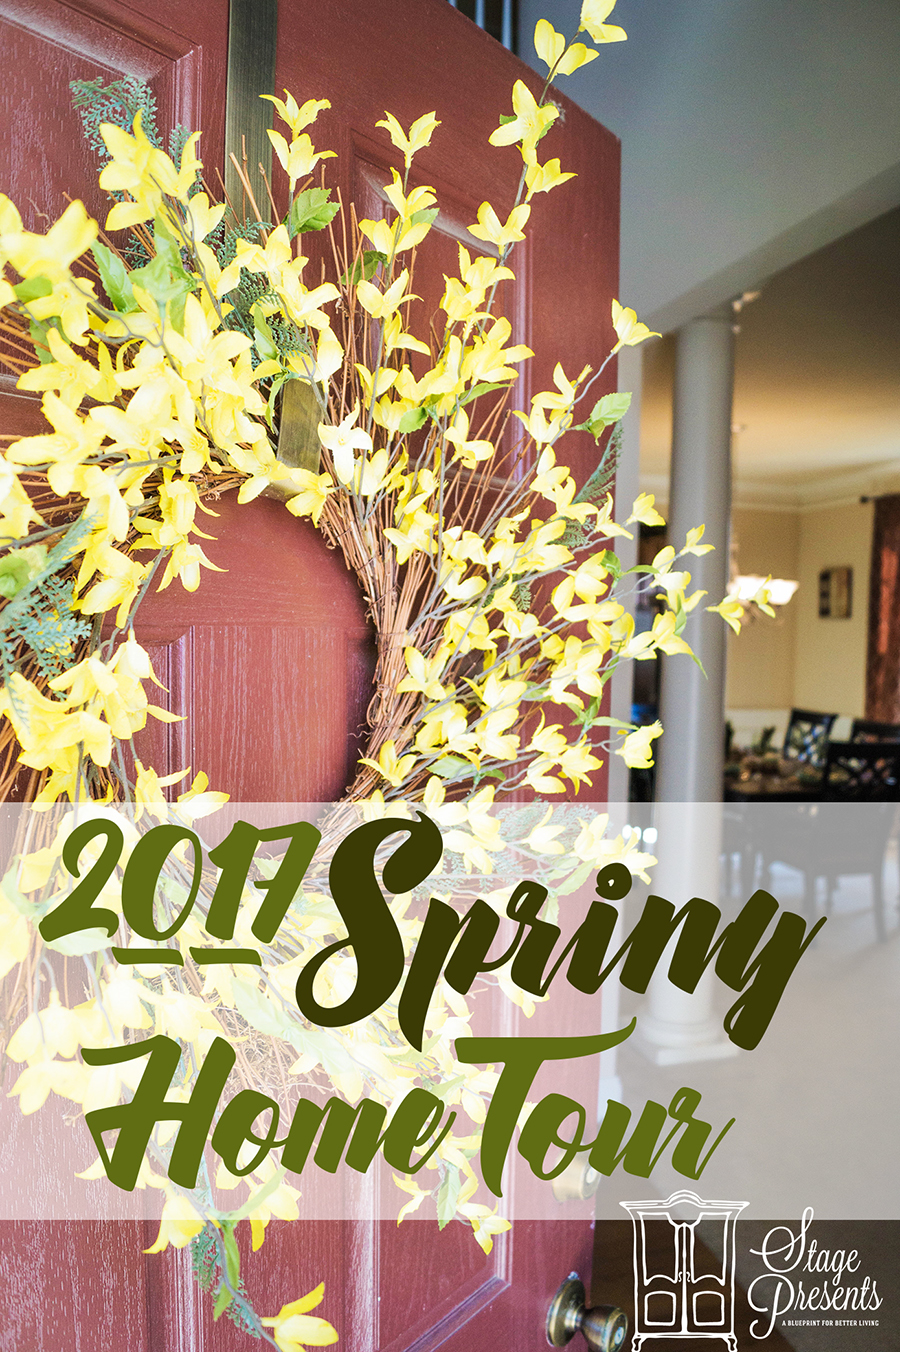 2017 Spring Home Tour - www.stage-presents.com